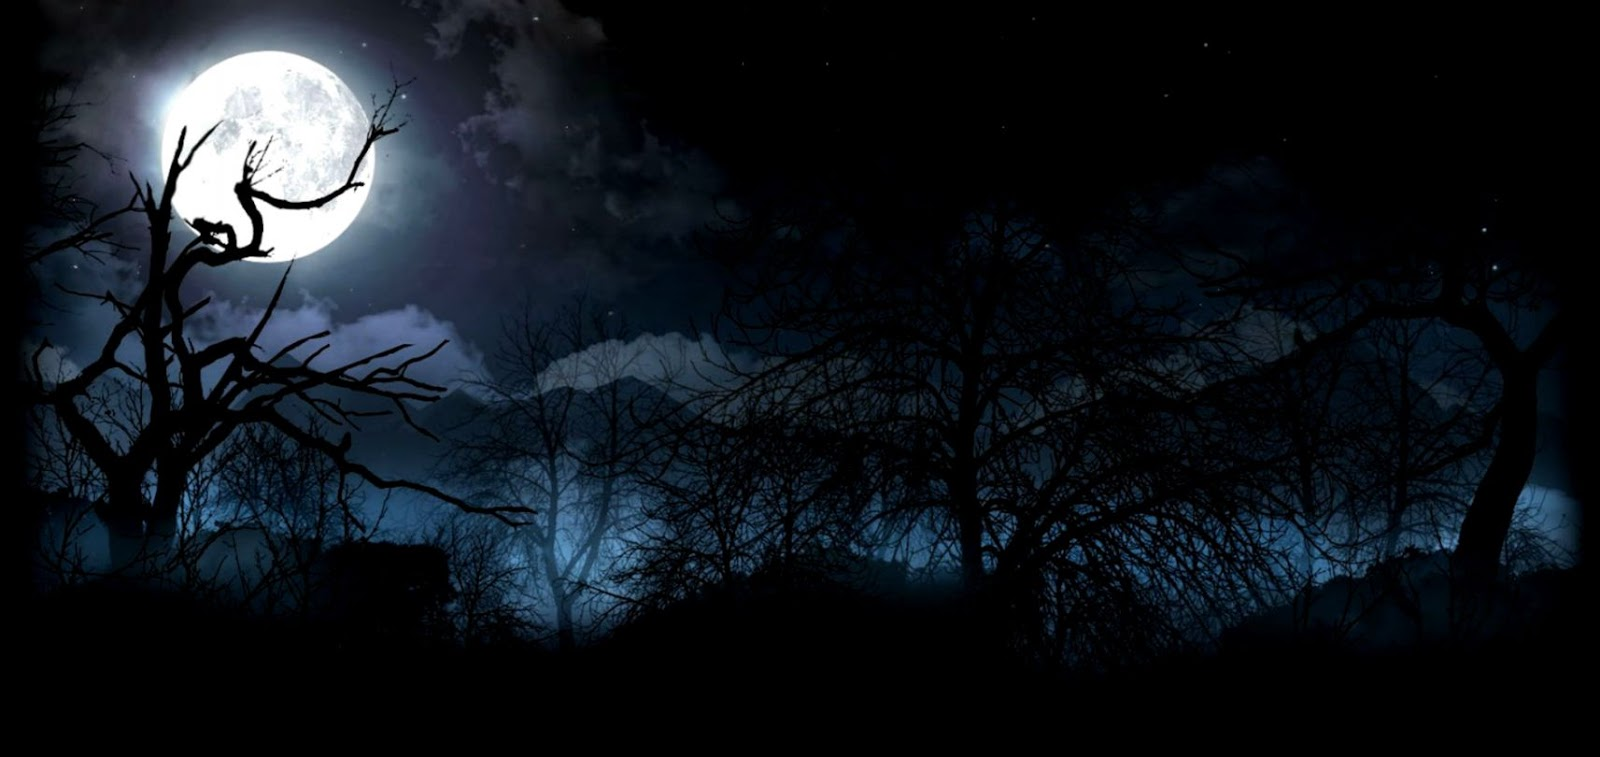 Forest Moon Wallpapers - Horror Moon Background Hd , HD Wallpaper & Backgrounds